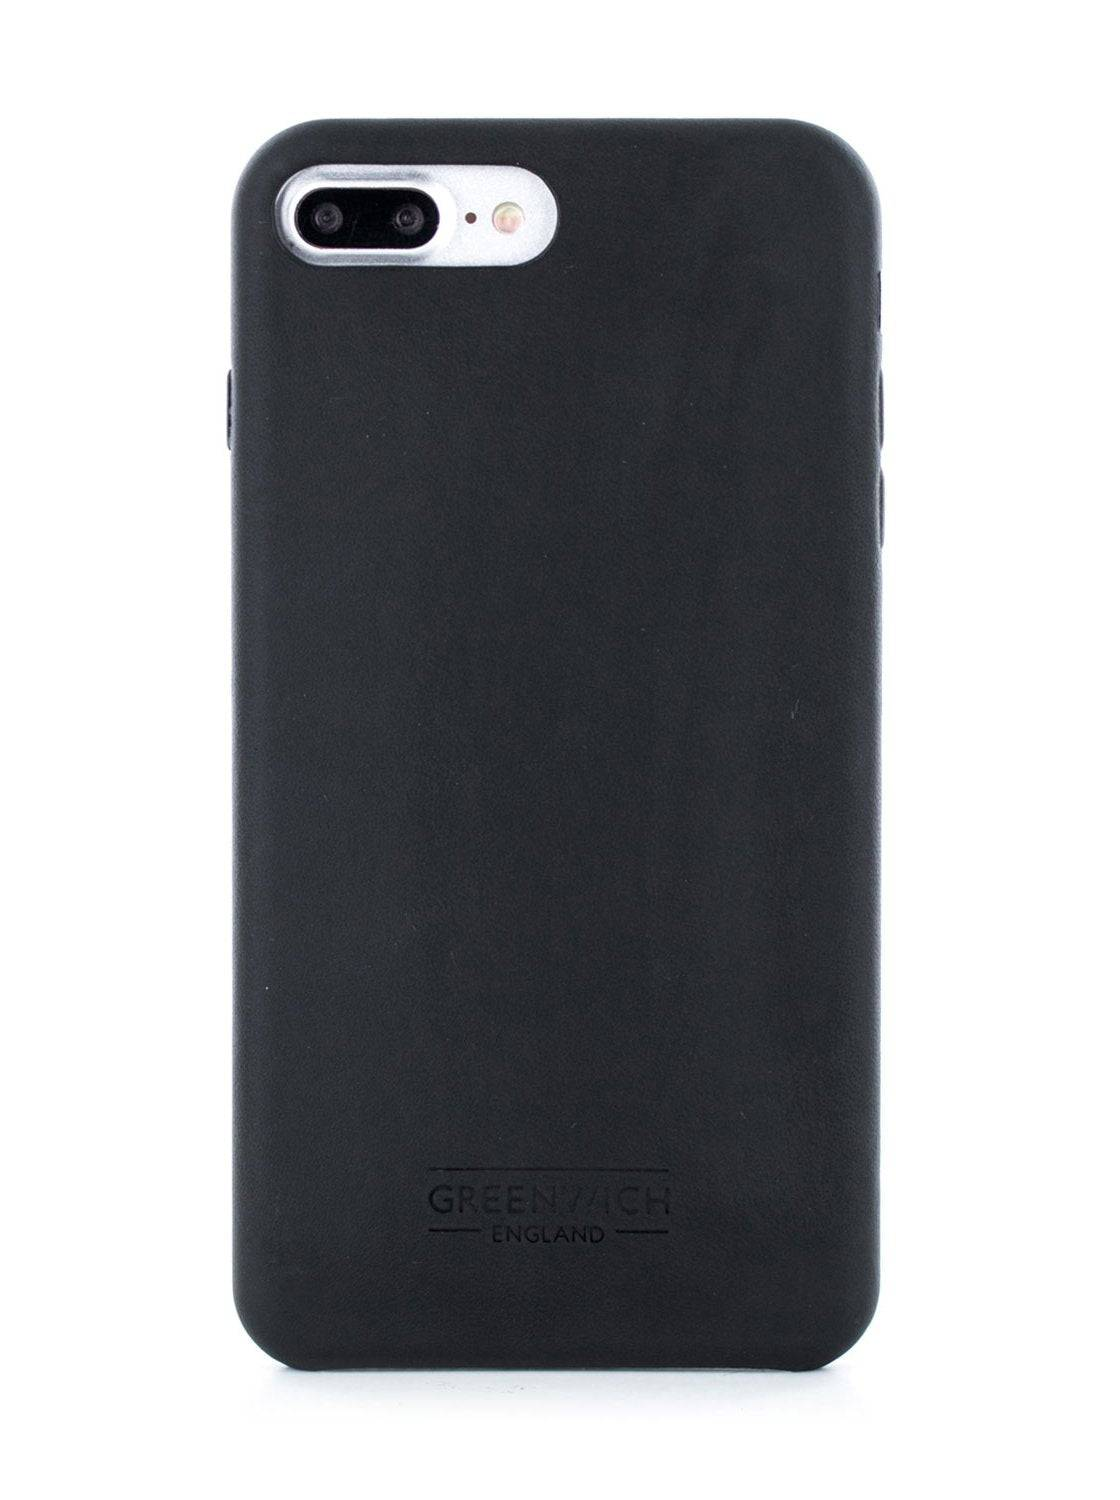 Greenwich AEON Luxury Leather Back Shell for iPhone 8 Plus / 7 Plus In Beluga (Black)